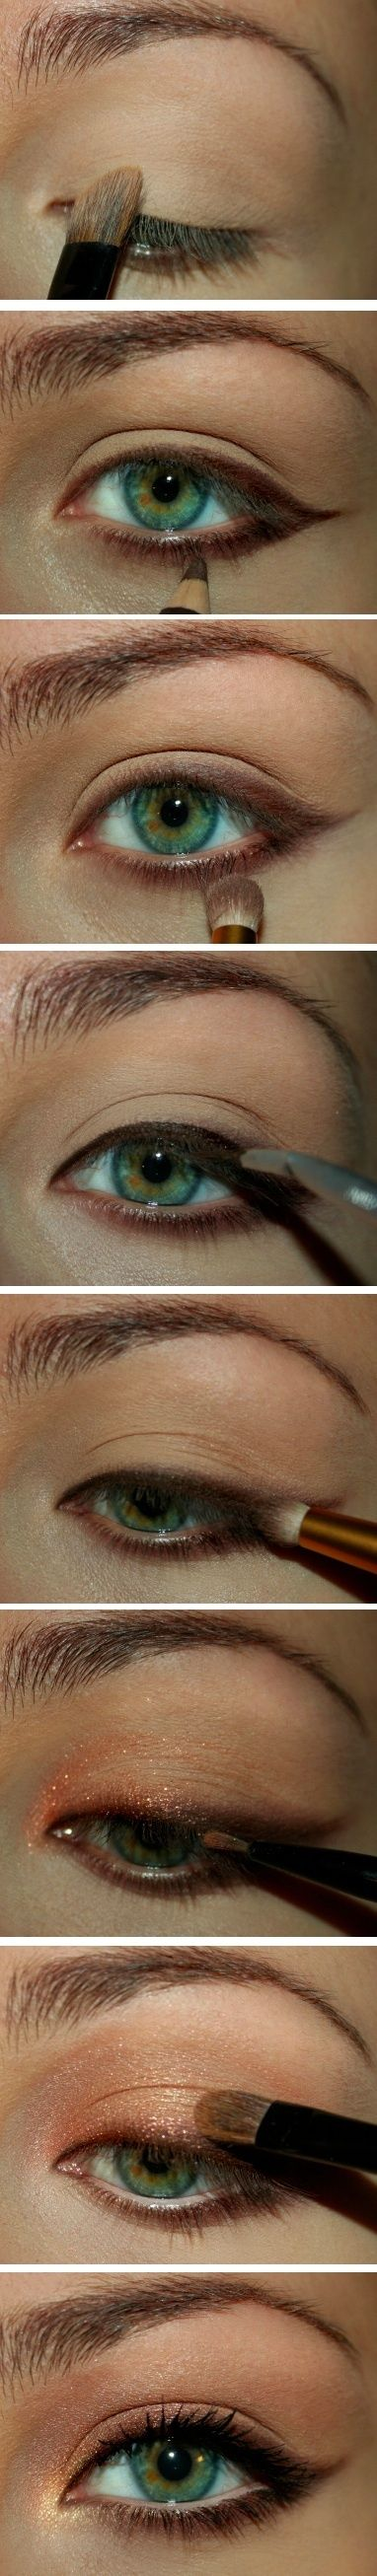 best images about salud y belleza on pinterest natural eyes